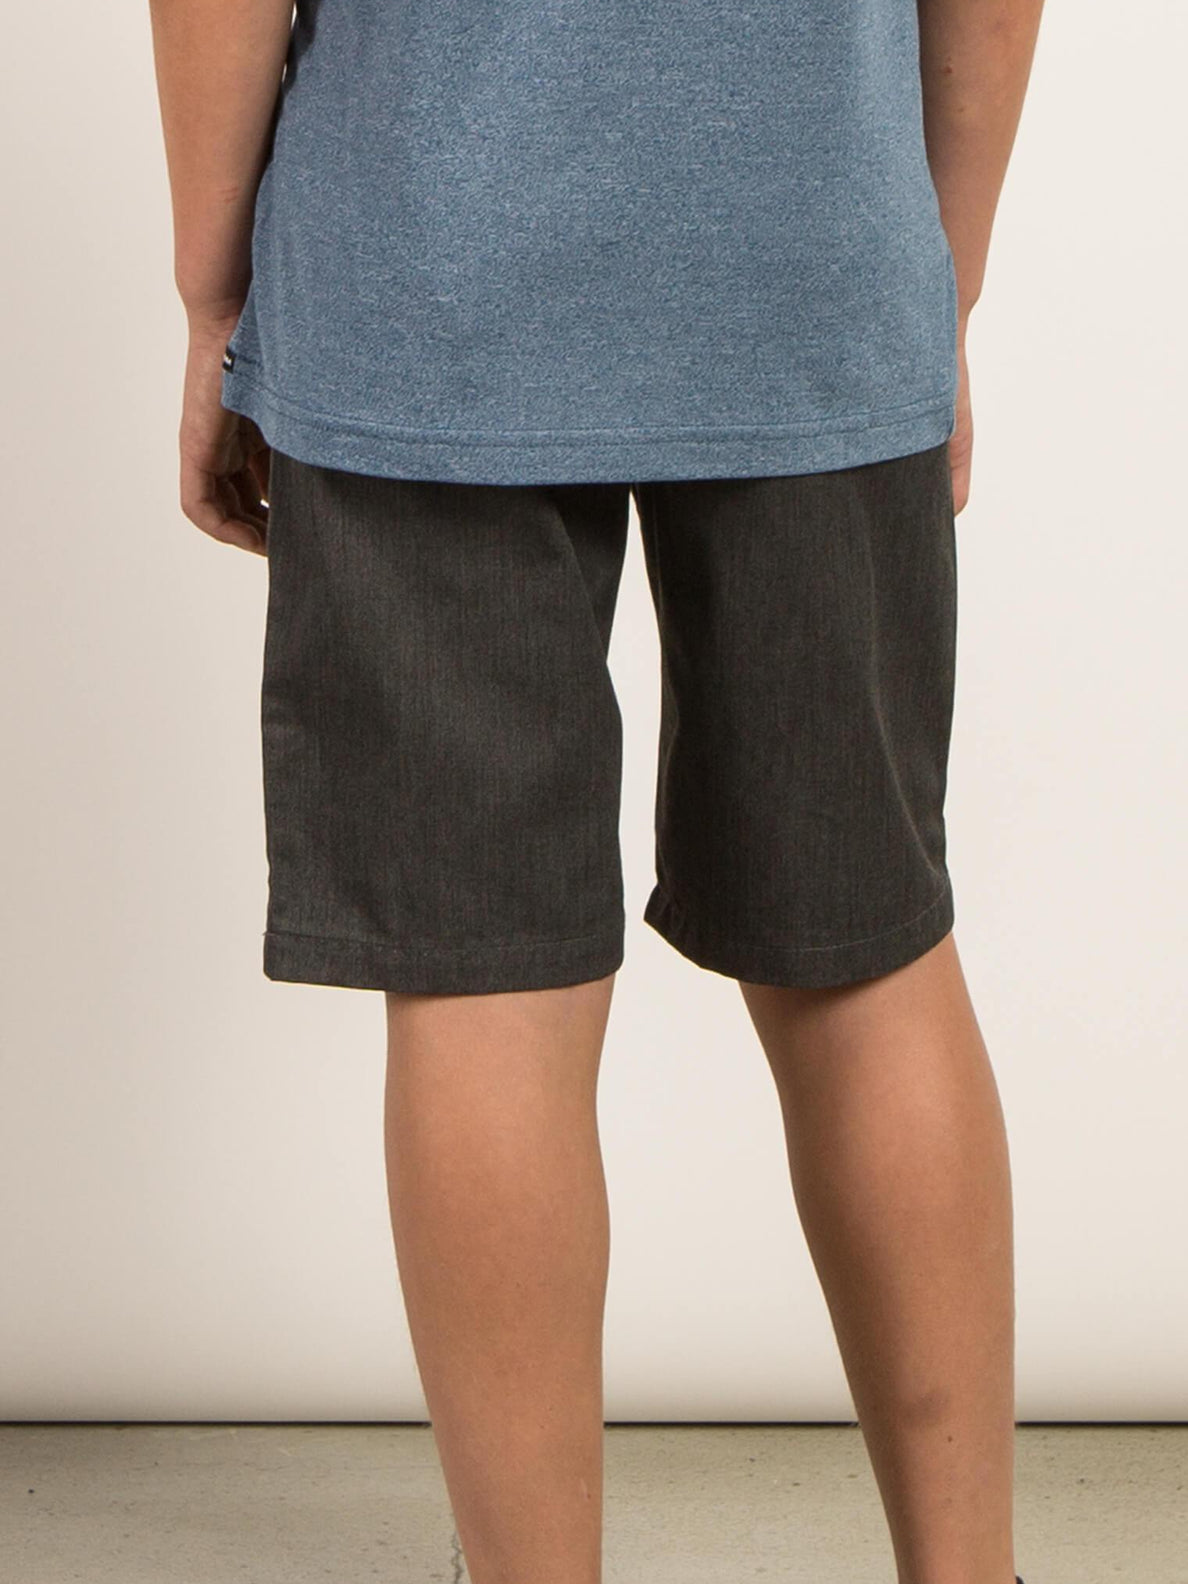 Big Boys Frickin Chino Shorts In Charcoal Heather, Back View